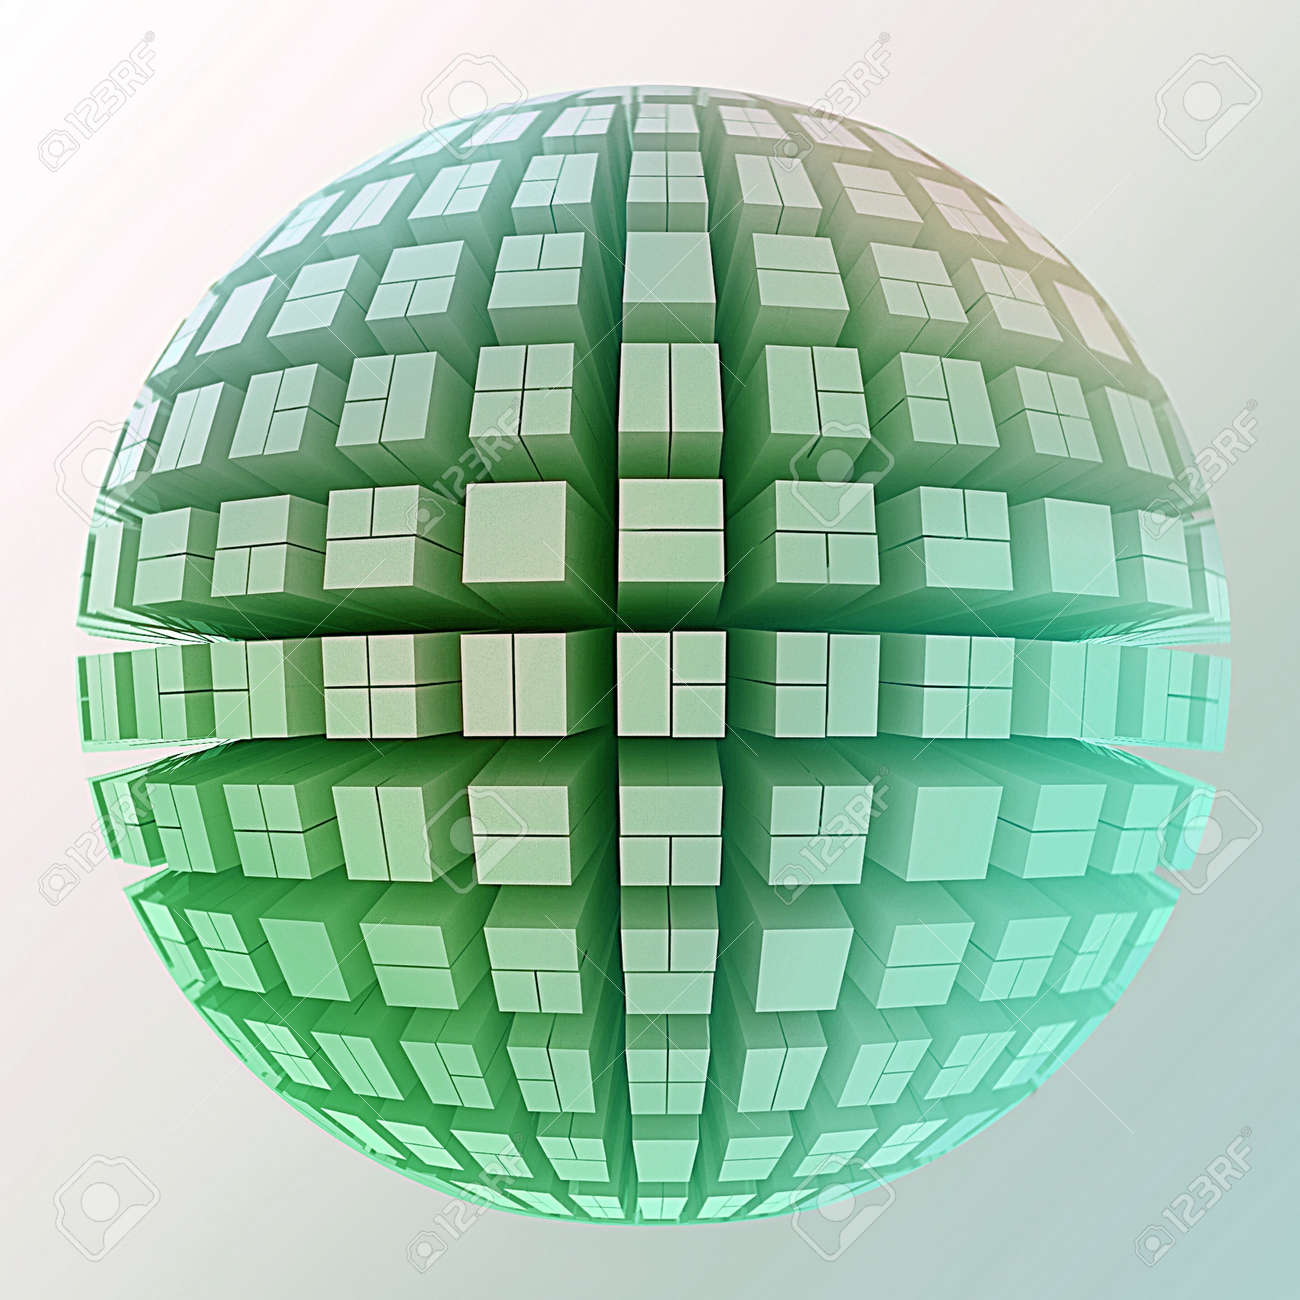 Globe of cubes Stock Photo - 14554507